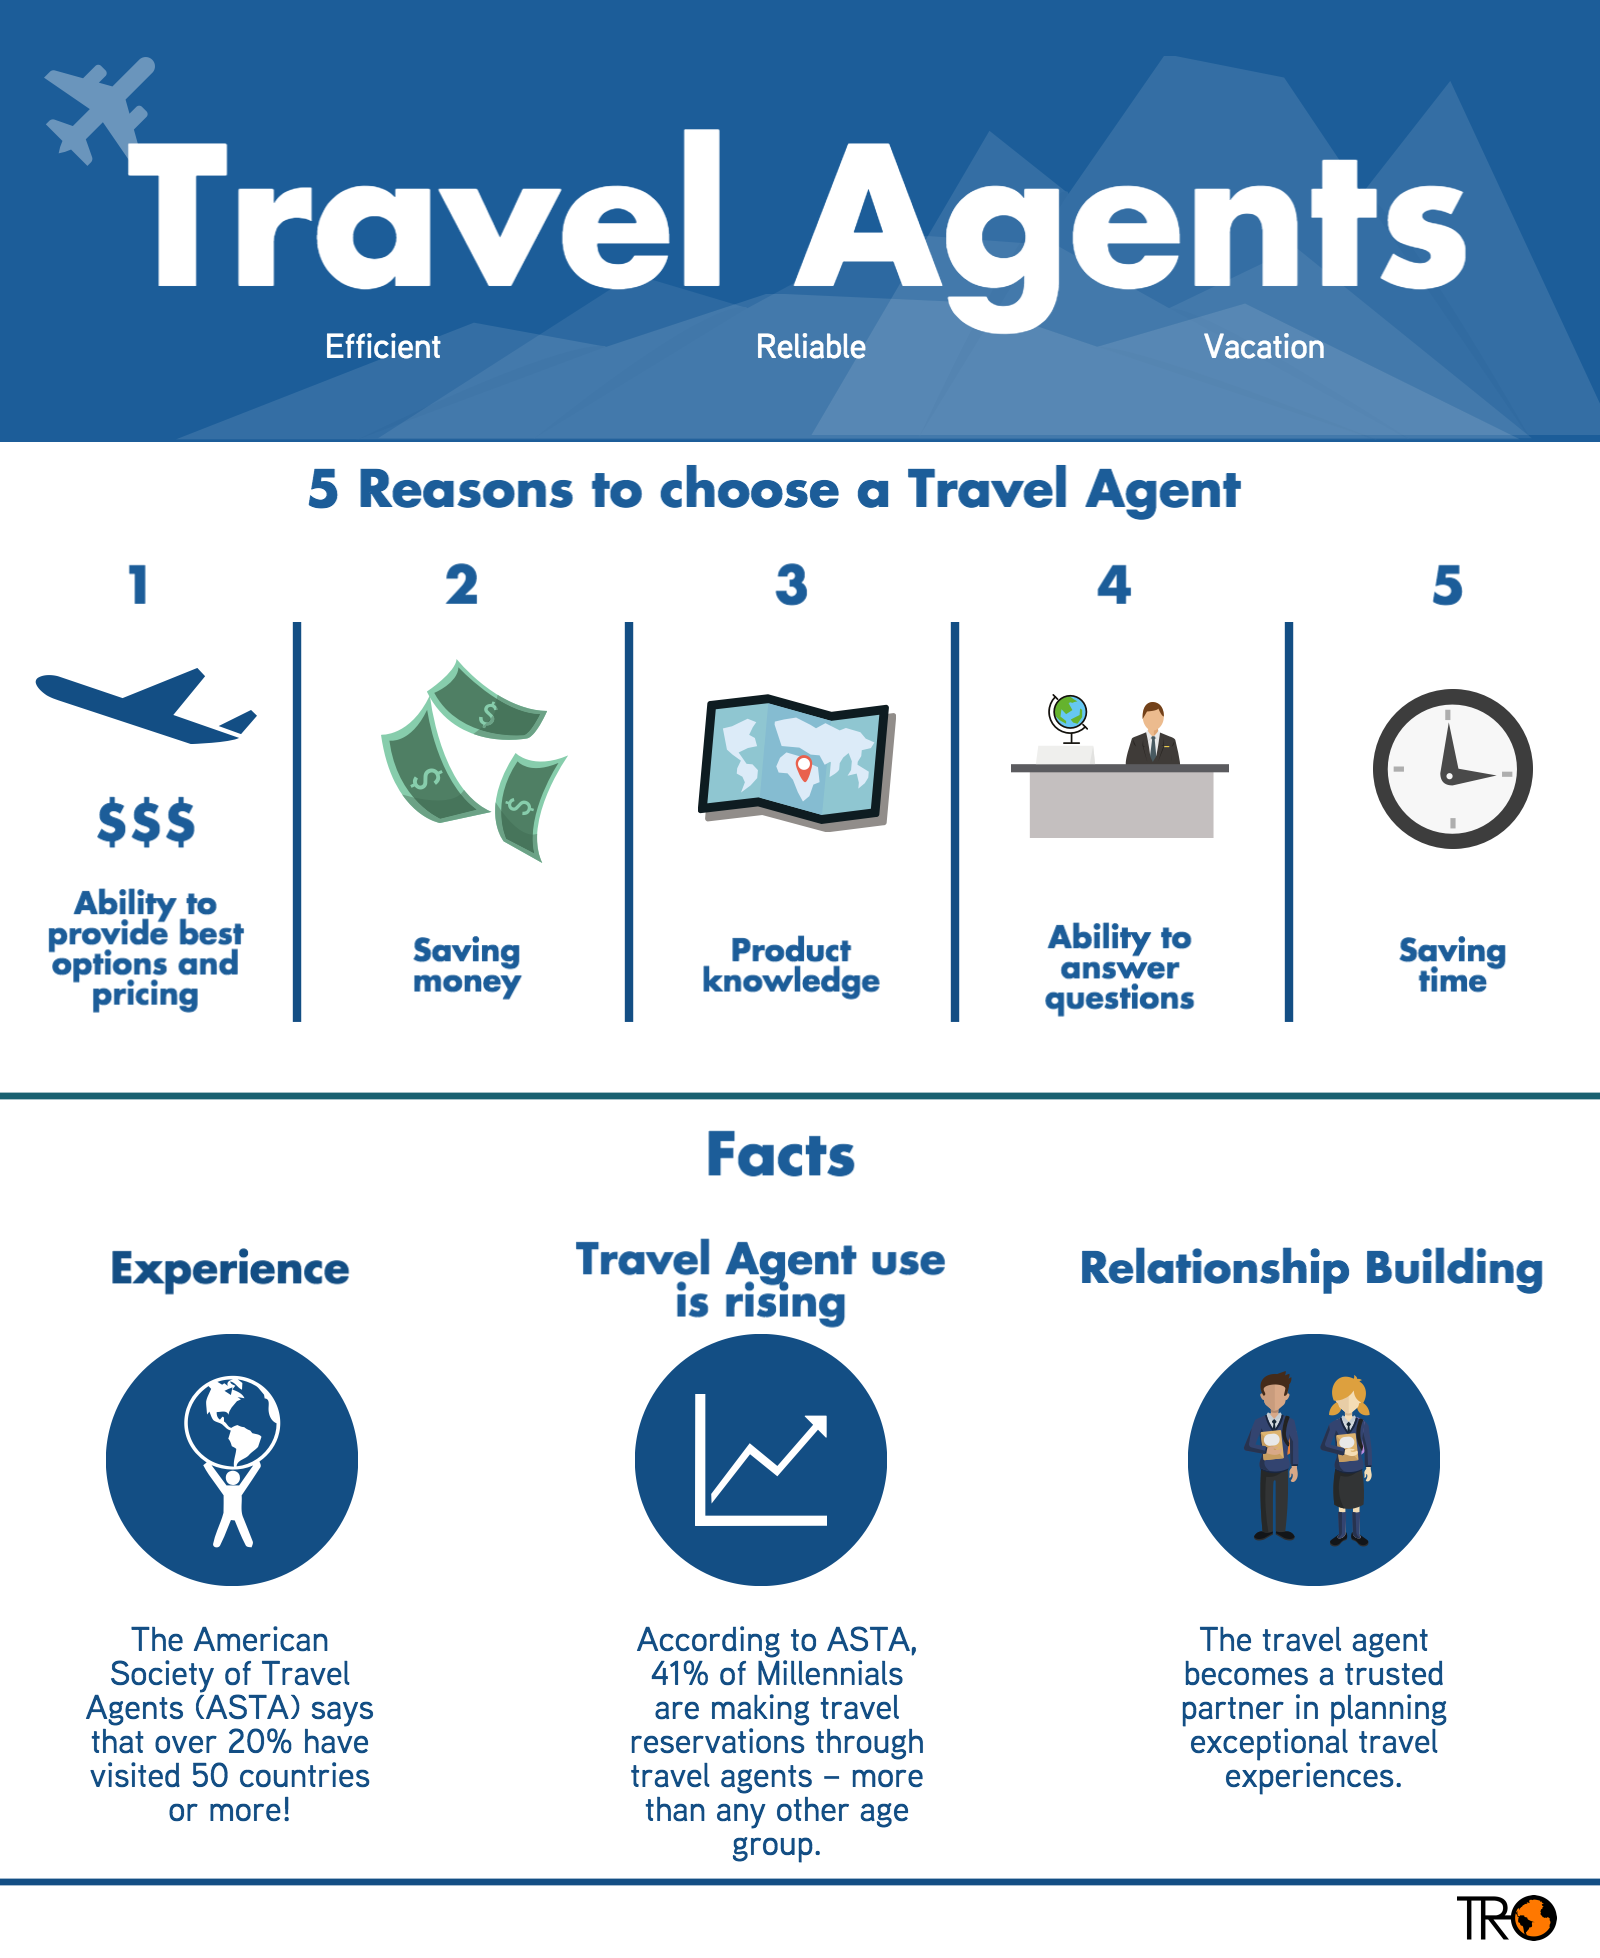 Travel Agents Host Agency: Travel Agents- Infographic